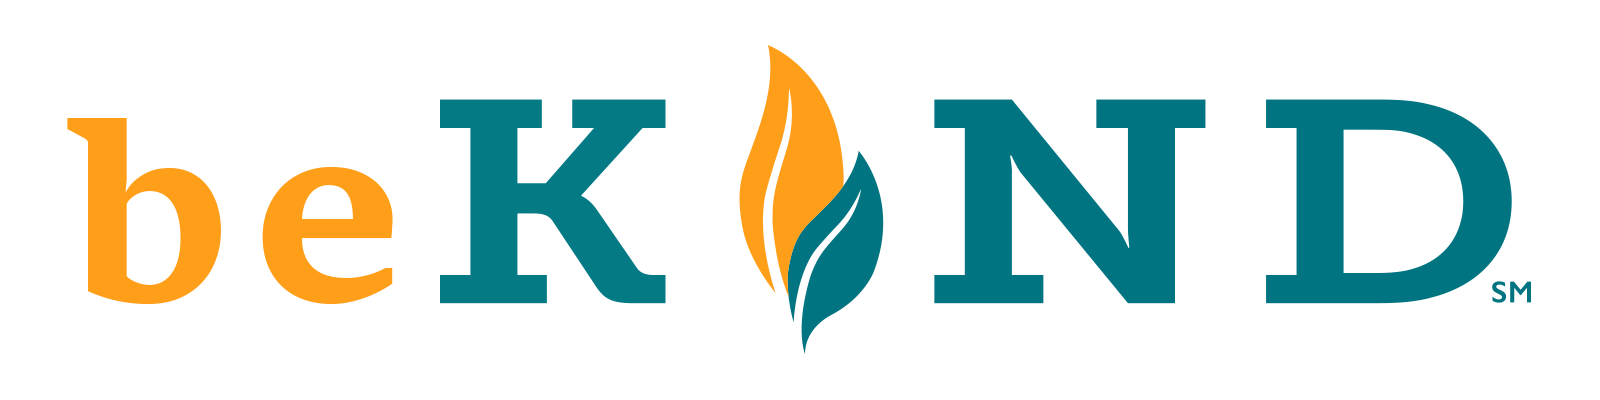 be-kind-logo-1600-x-400